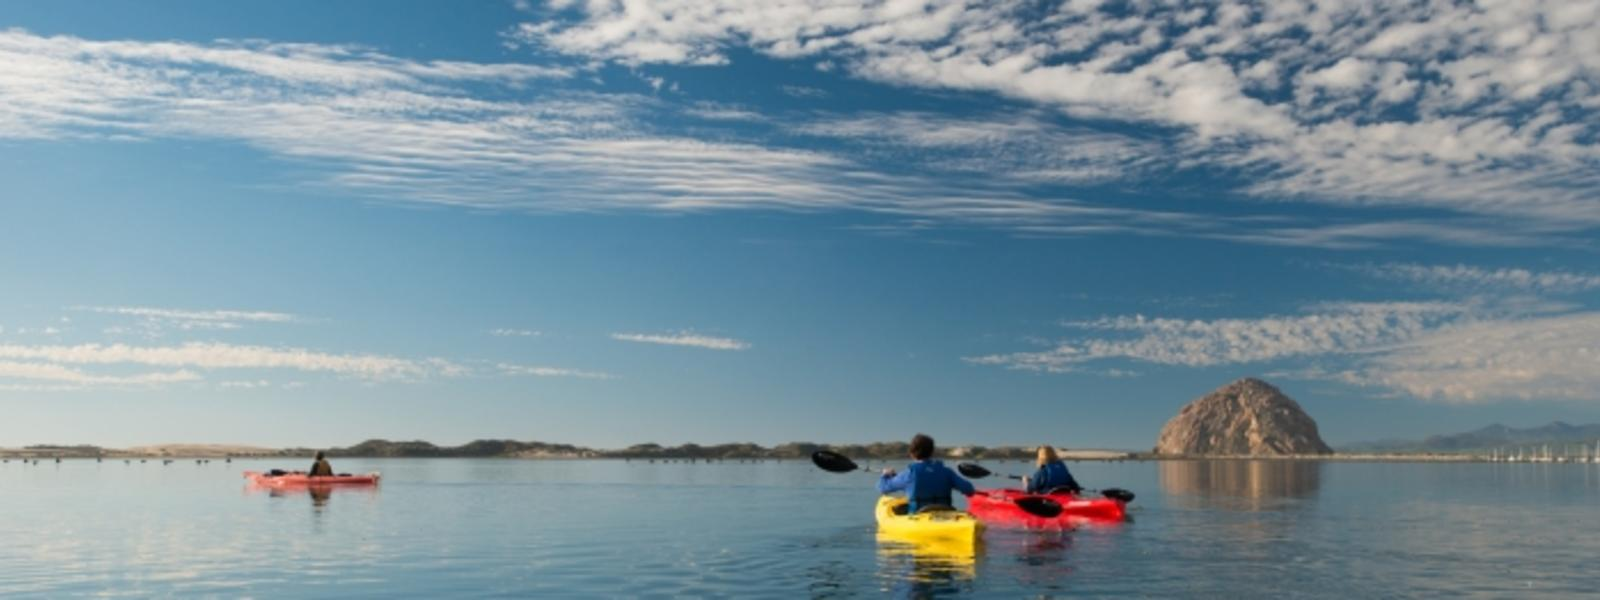 Kayakers in the water of Morro Bay in SLO CAL